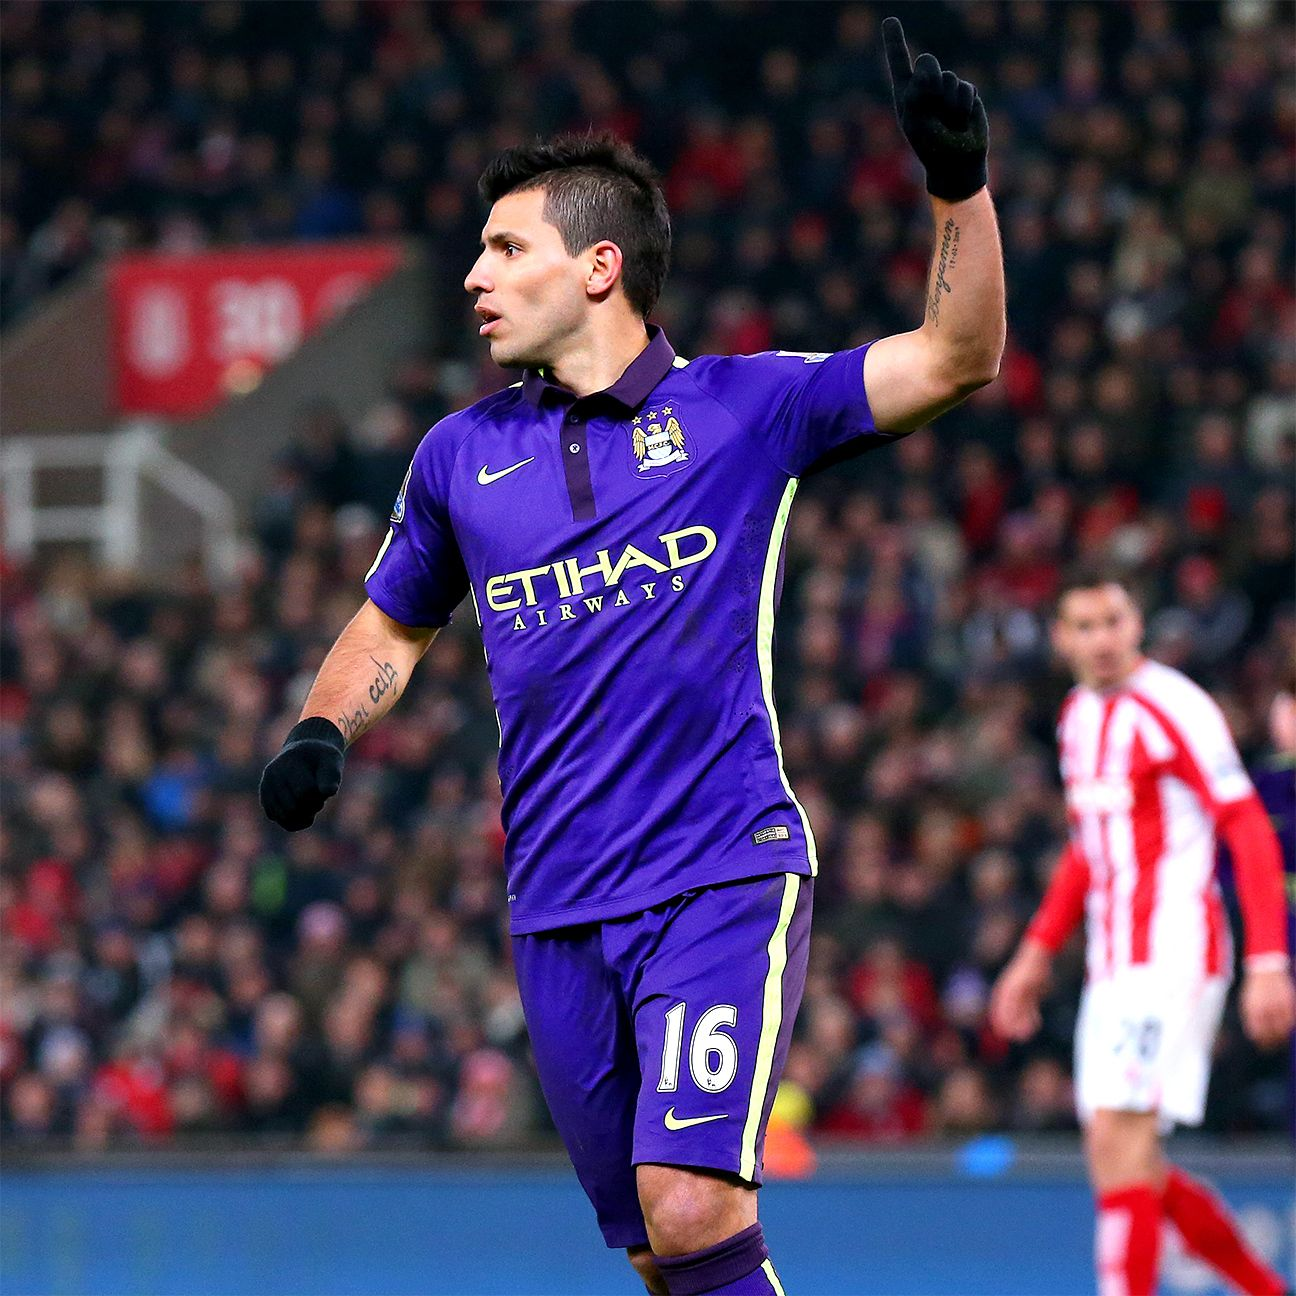 Sergio Aguero struck for a goal in each half to help Manchester City down Stoke 4-1.